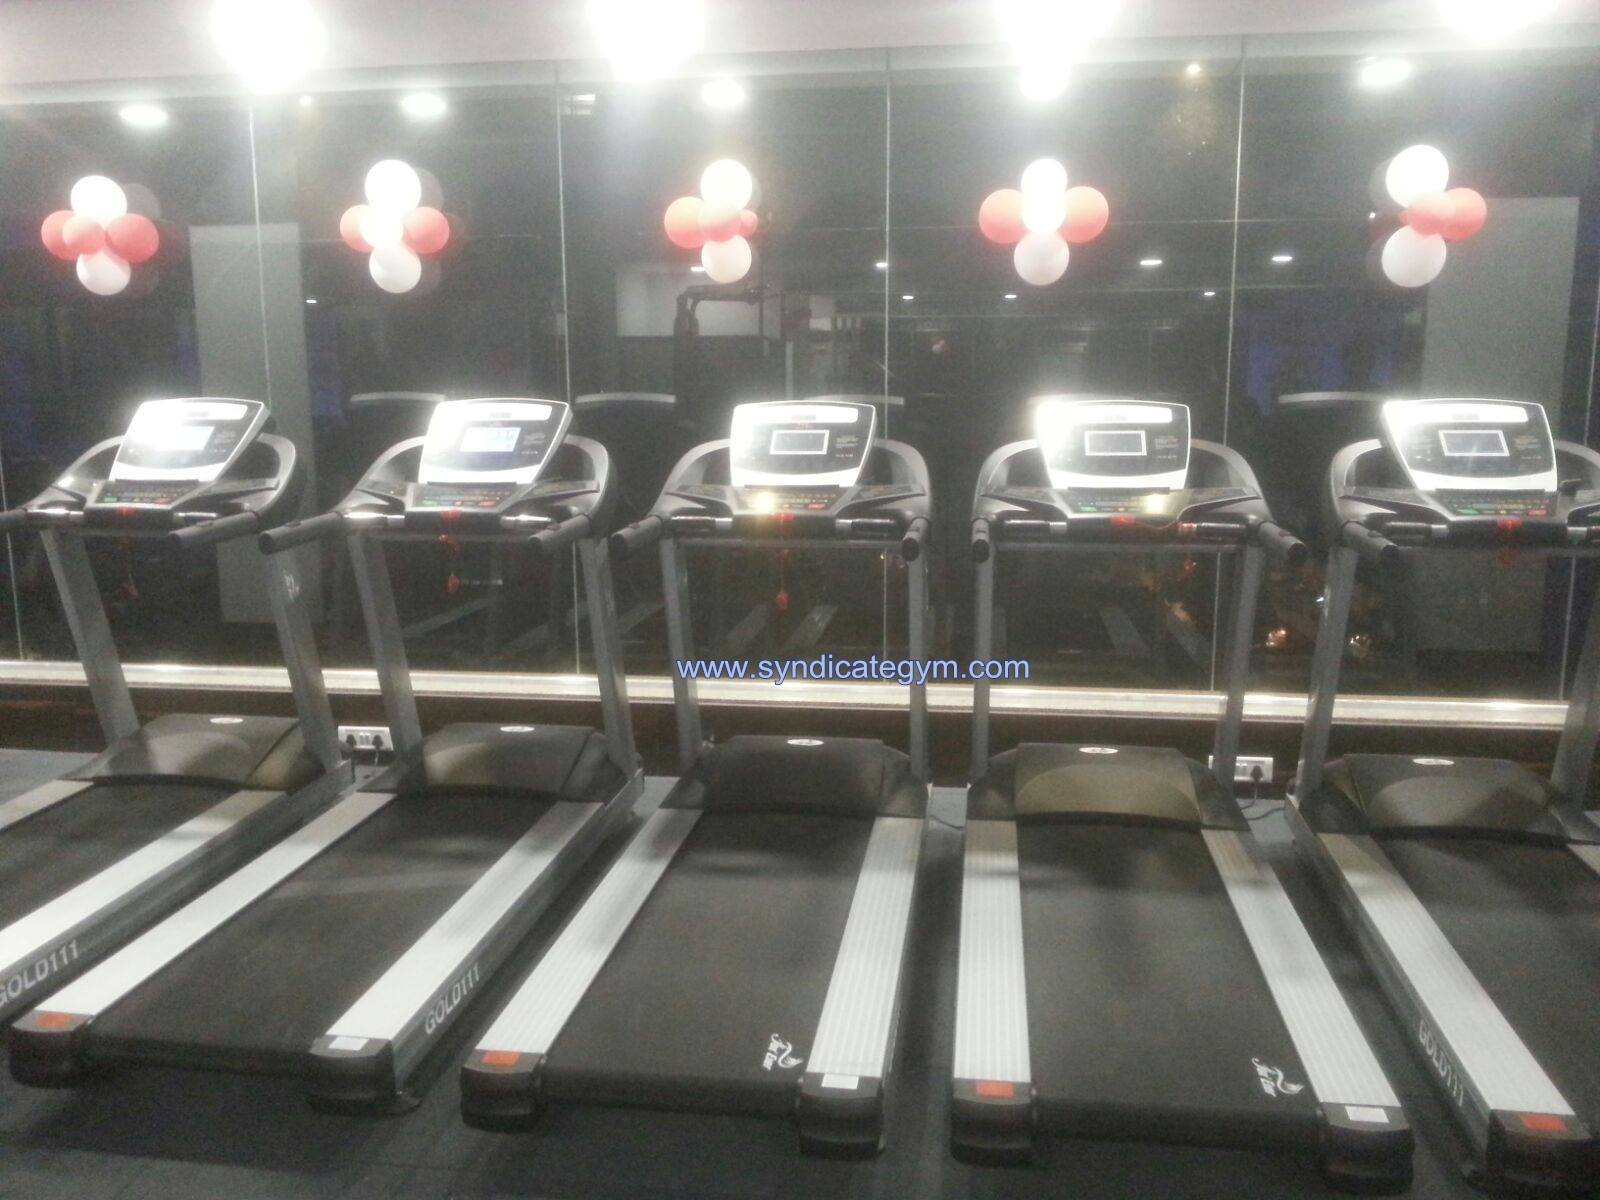 Syndicate Commercial Treadmill Gym Equipment